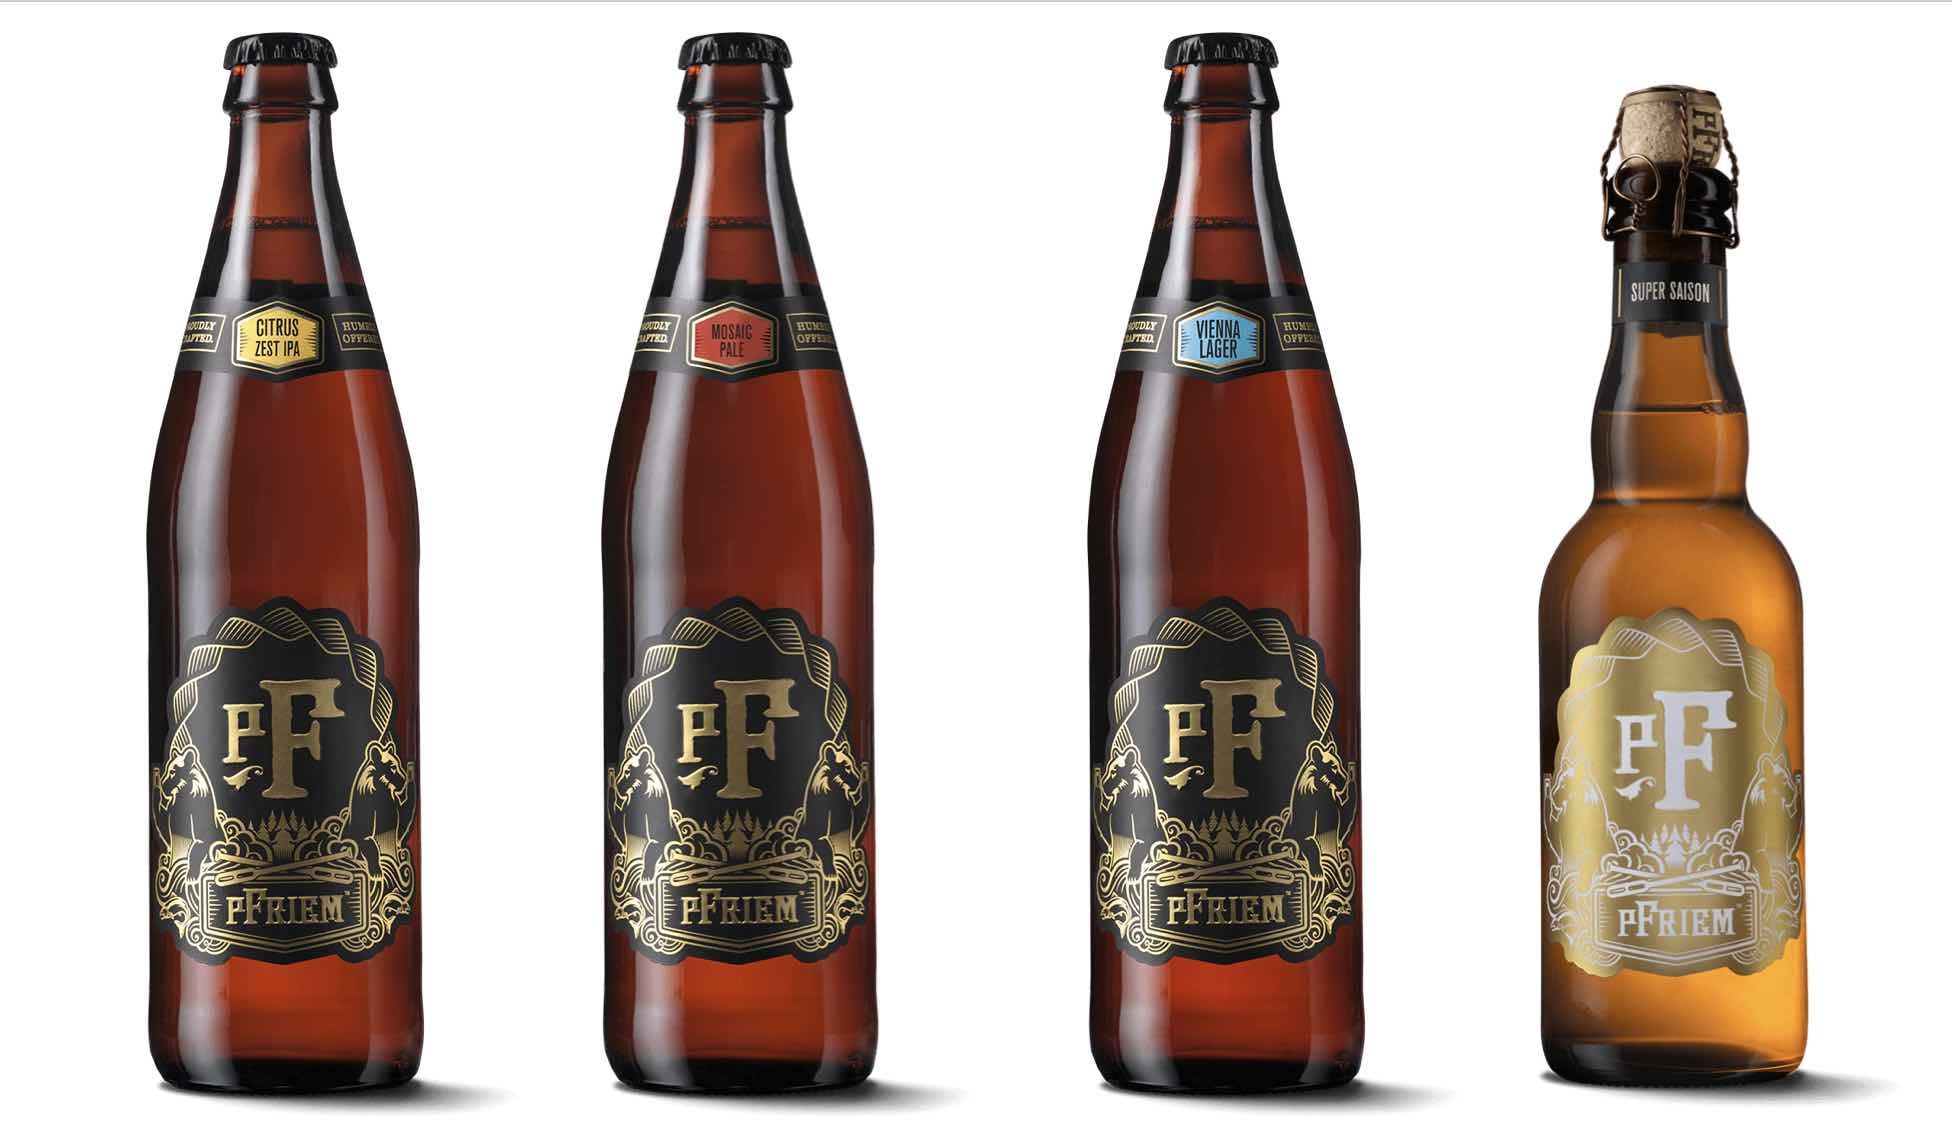 pFriem Family Brewers Winter Releases - Citrus Zest IPA, Mosaic Pale Ale, Vienna Lager and Super Saison